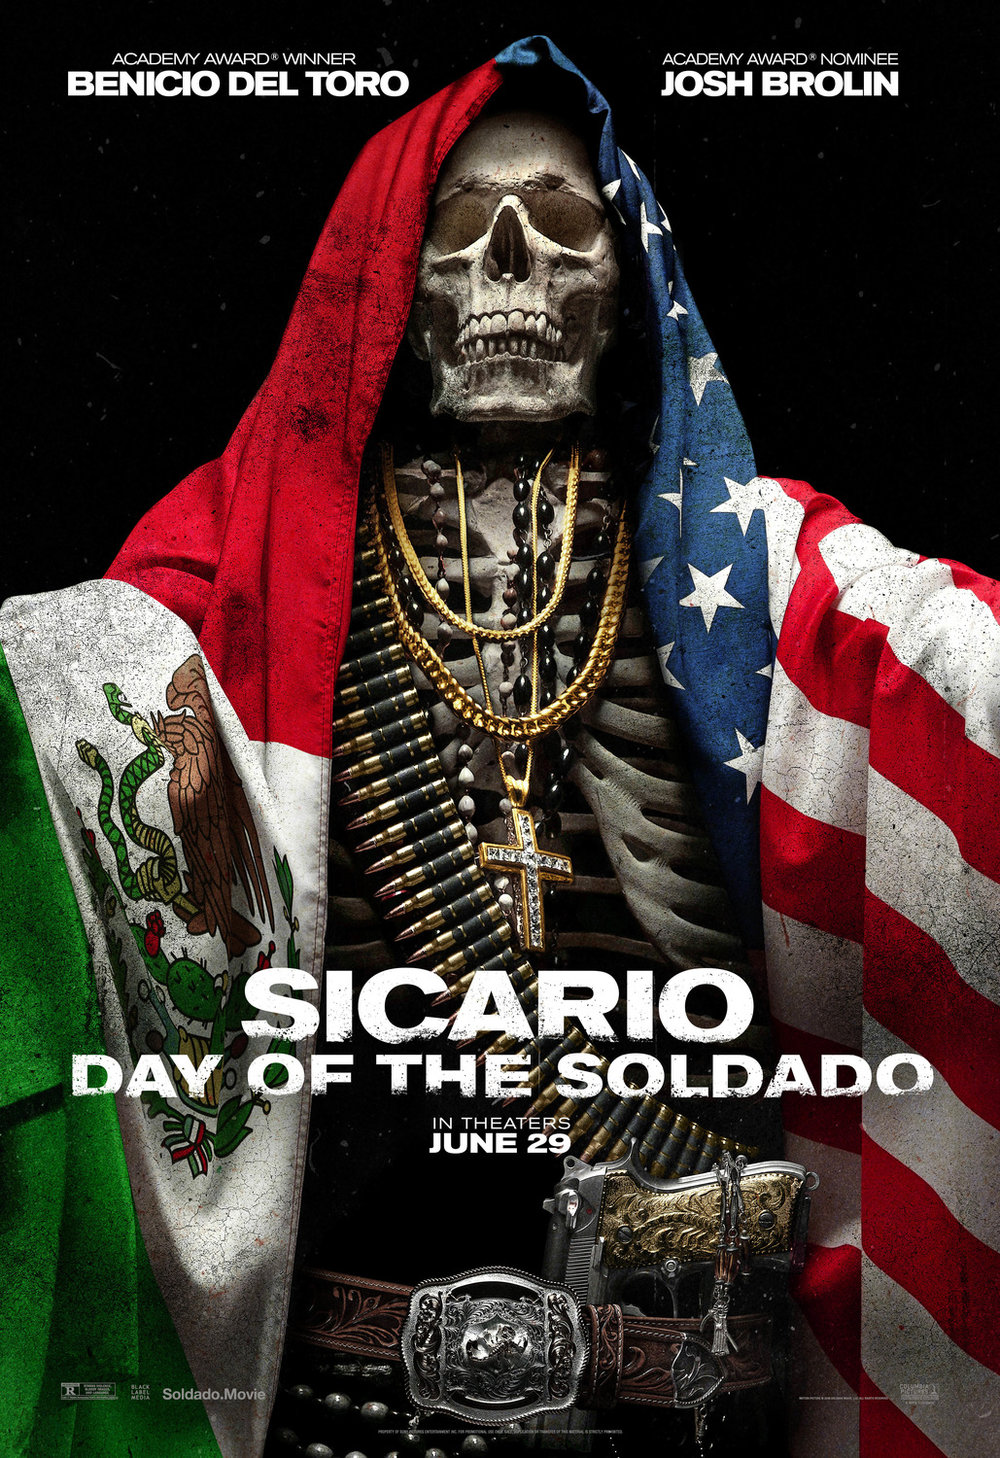 sicario_day_of_the_soldado_ver9_xlg.jpg